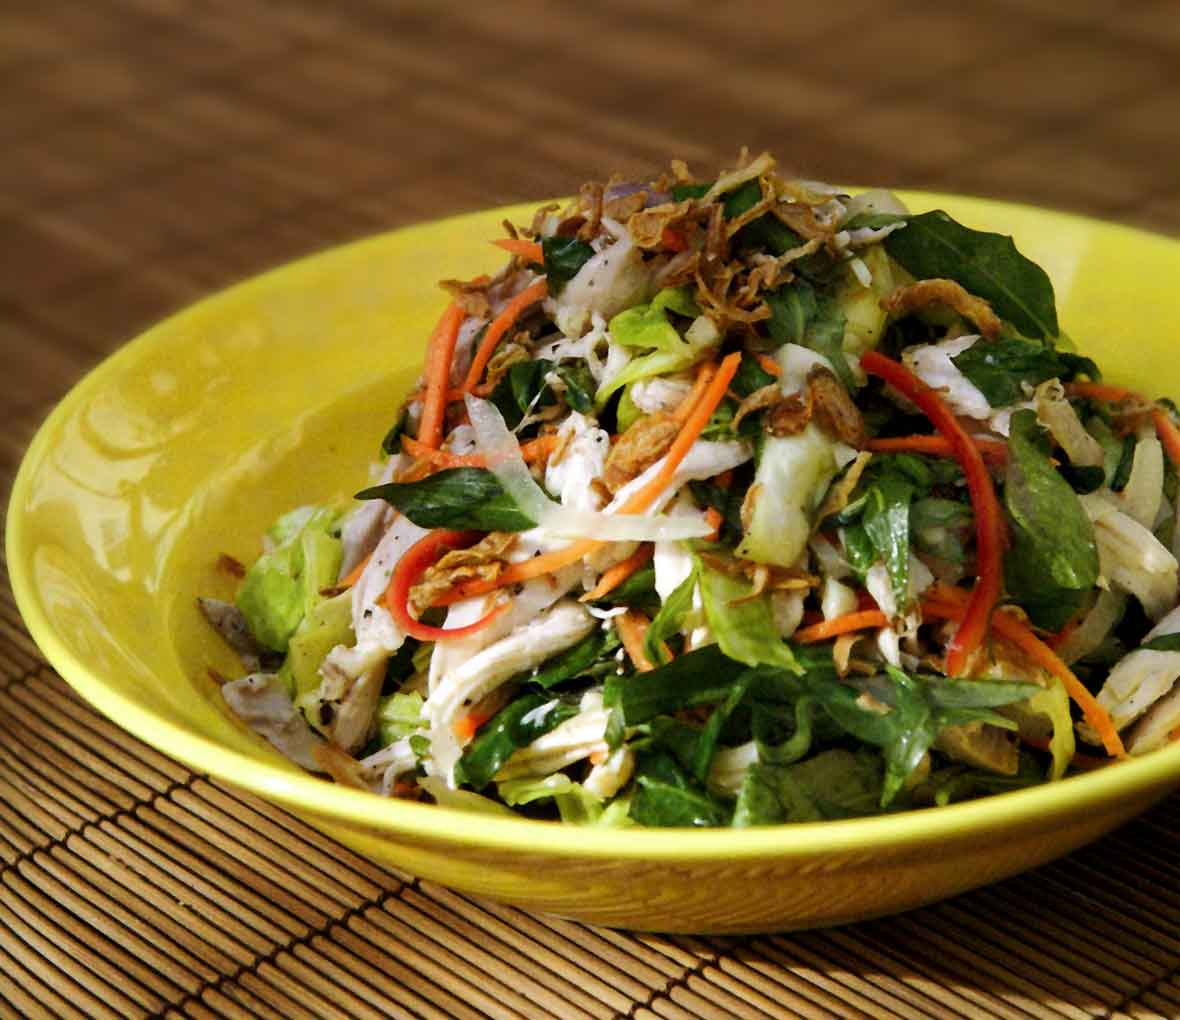 Poached Chicken and Cabbage Salad